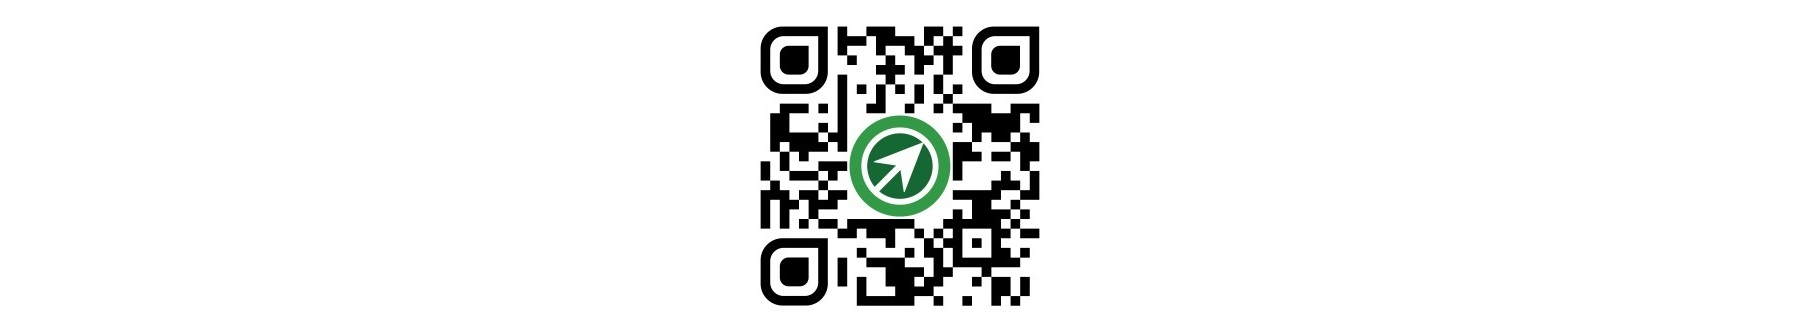 http://campaign-image.com/zohocampaigns/479159000000035136_zc_v141_otds_qrcode_for_newsletter2.jpg